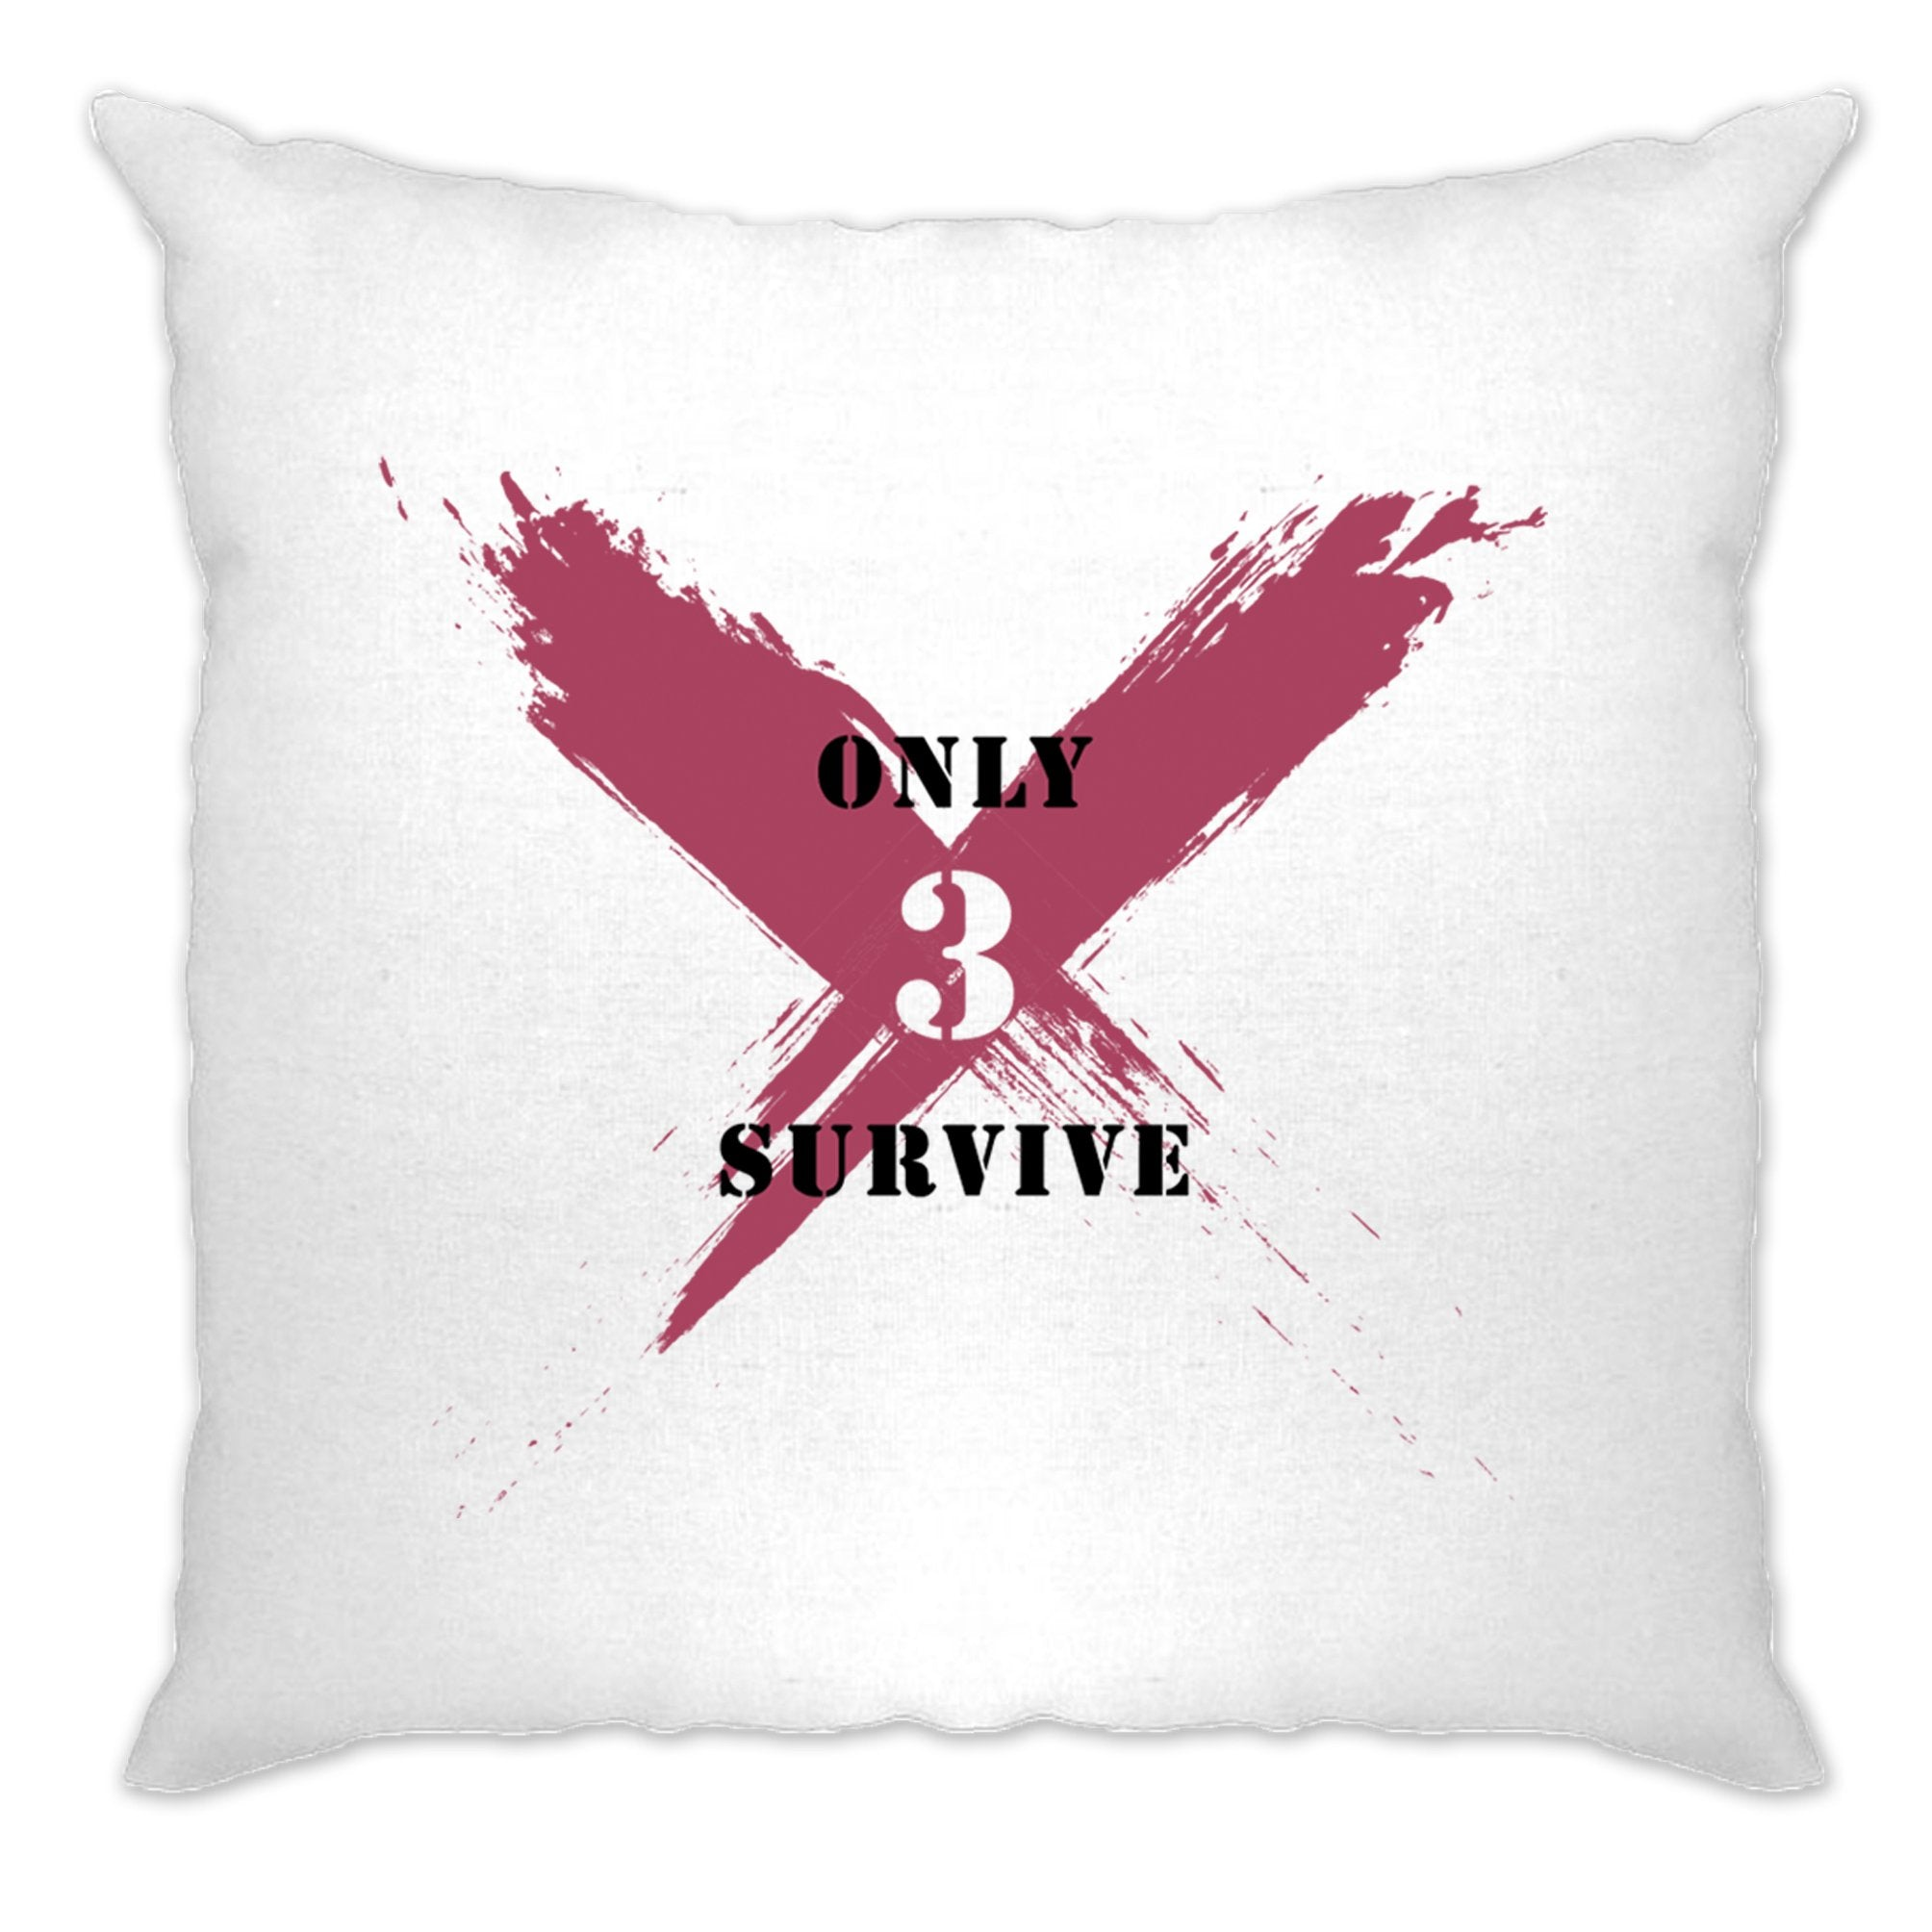 Squad Gaming Cushion Cover Only 3 Survive Slogan